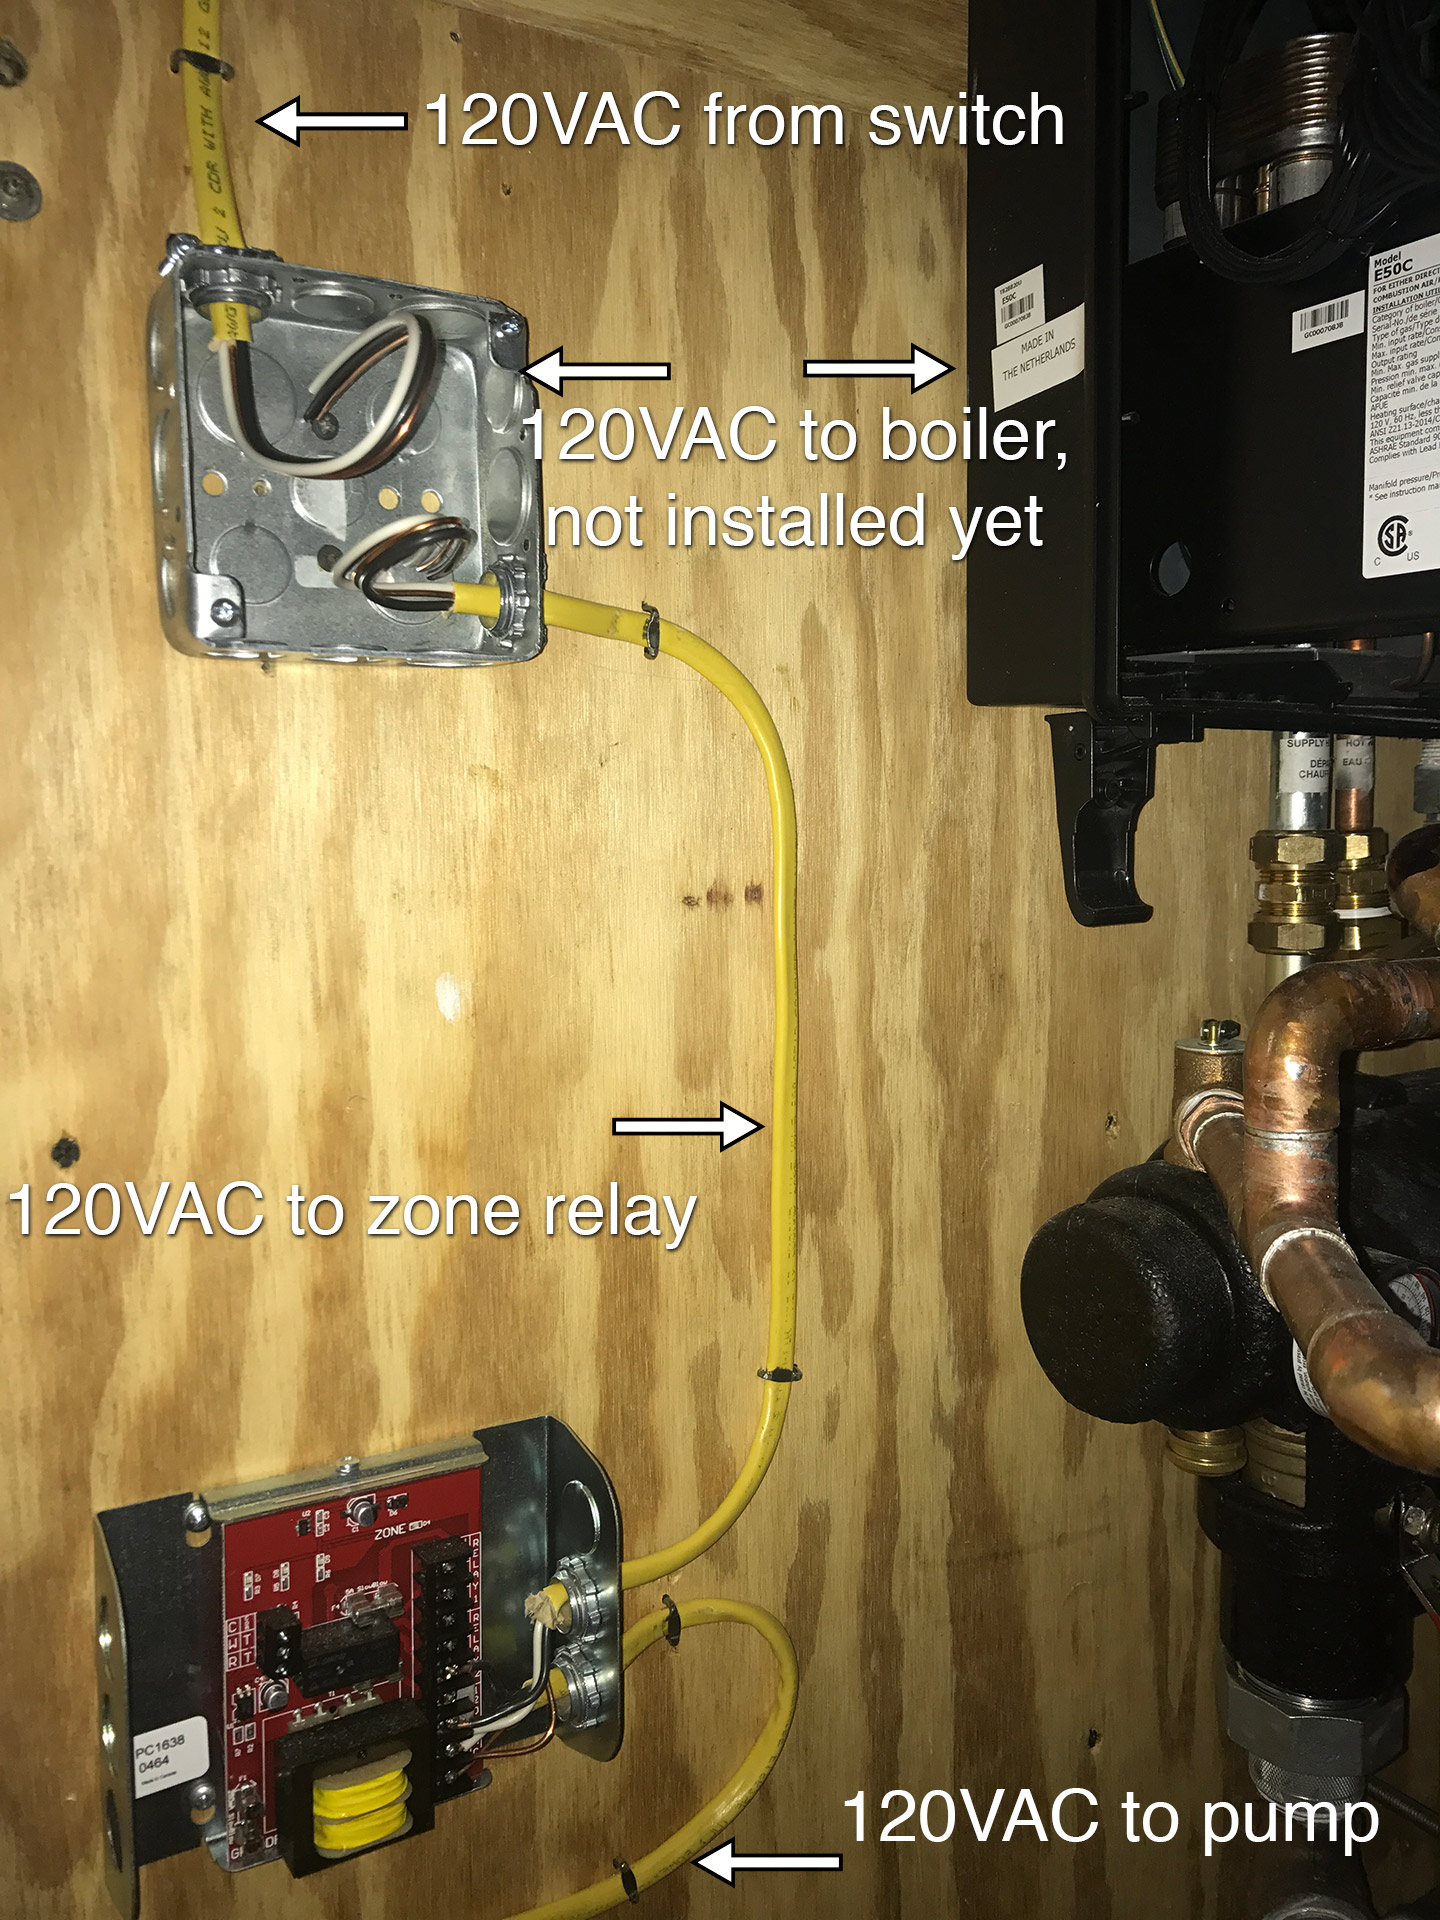 hight resolution of  the note for that green external pump connector warning about not connecting a pump directly because of a call for heat or dhw energizing that circuit